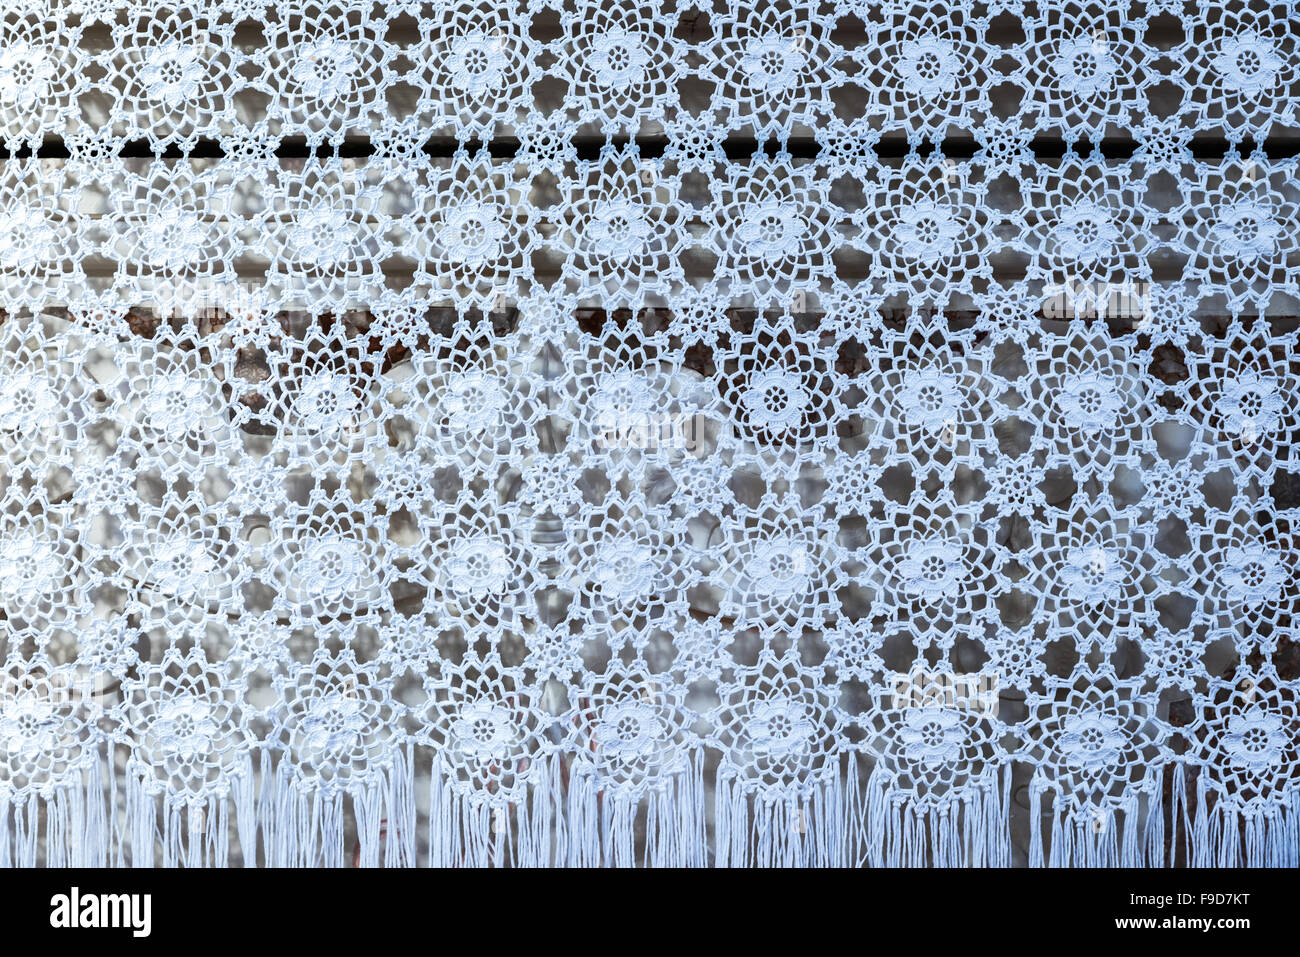 Woven Tablecloth Stockfotos & Woven Tablecloth Bilder - Alamy